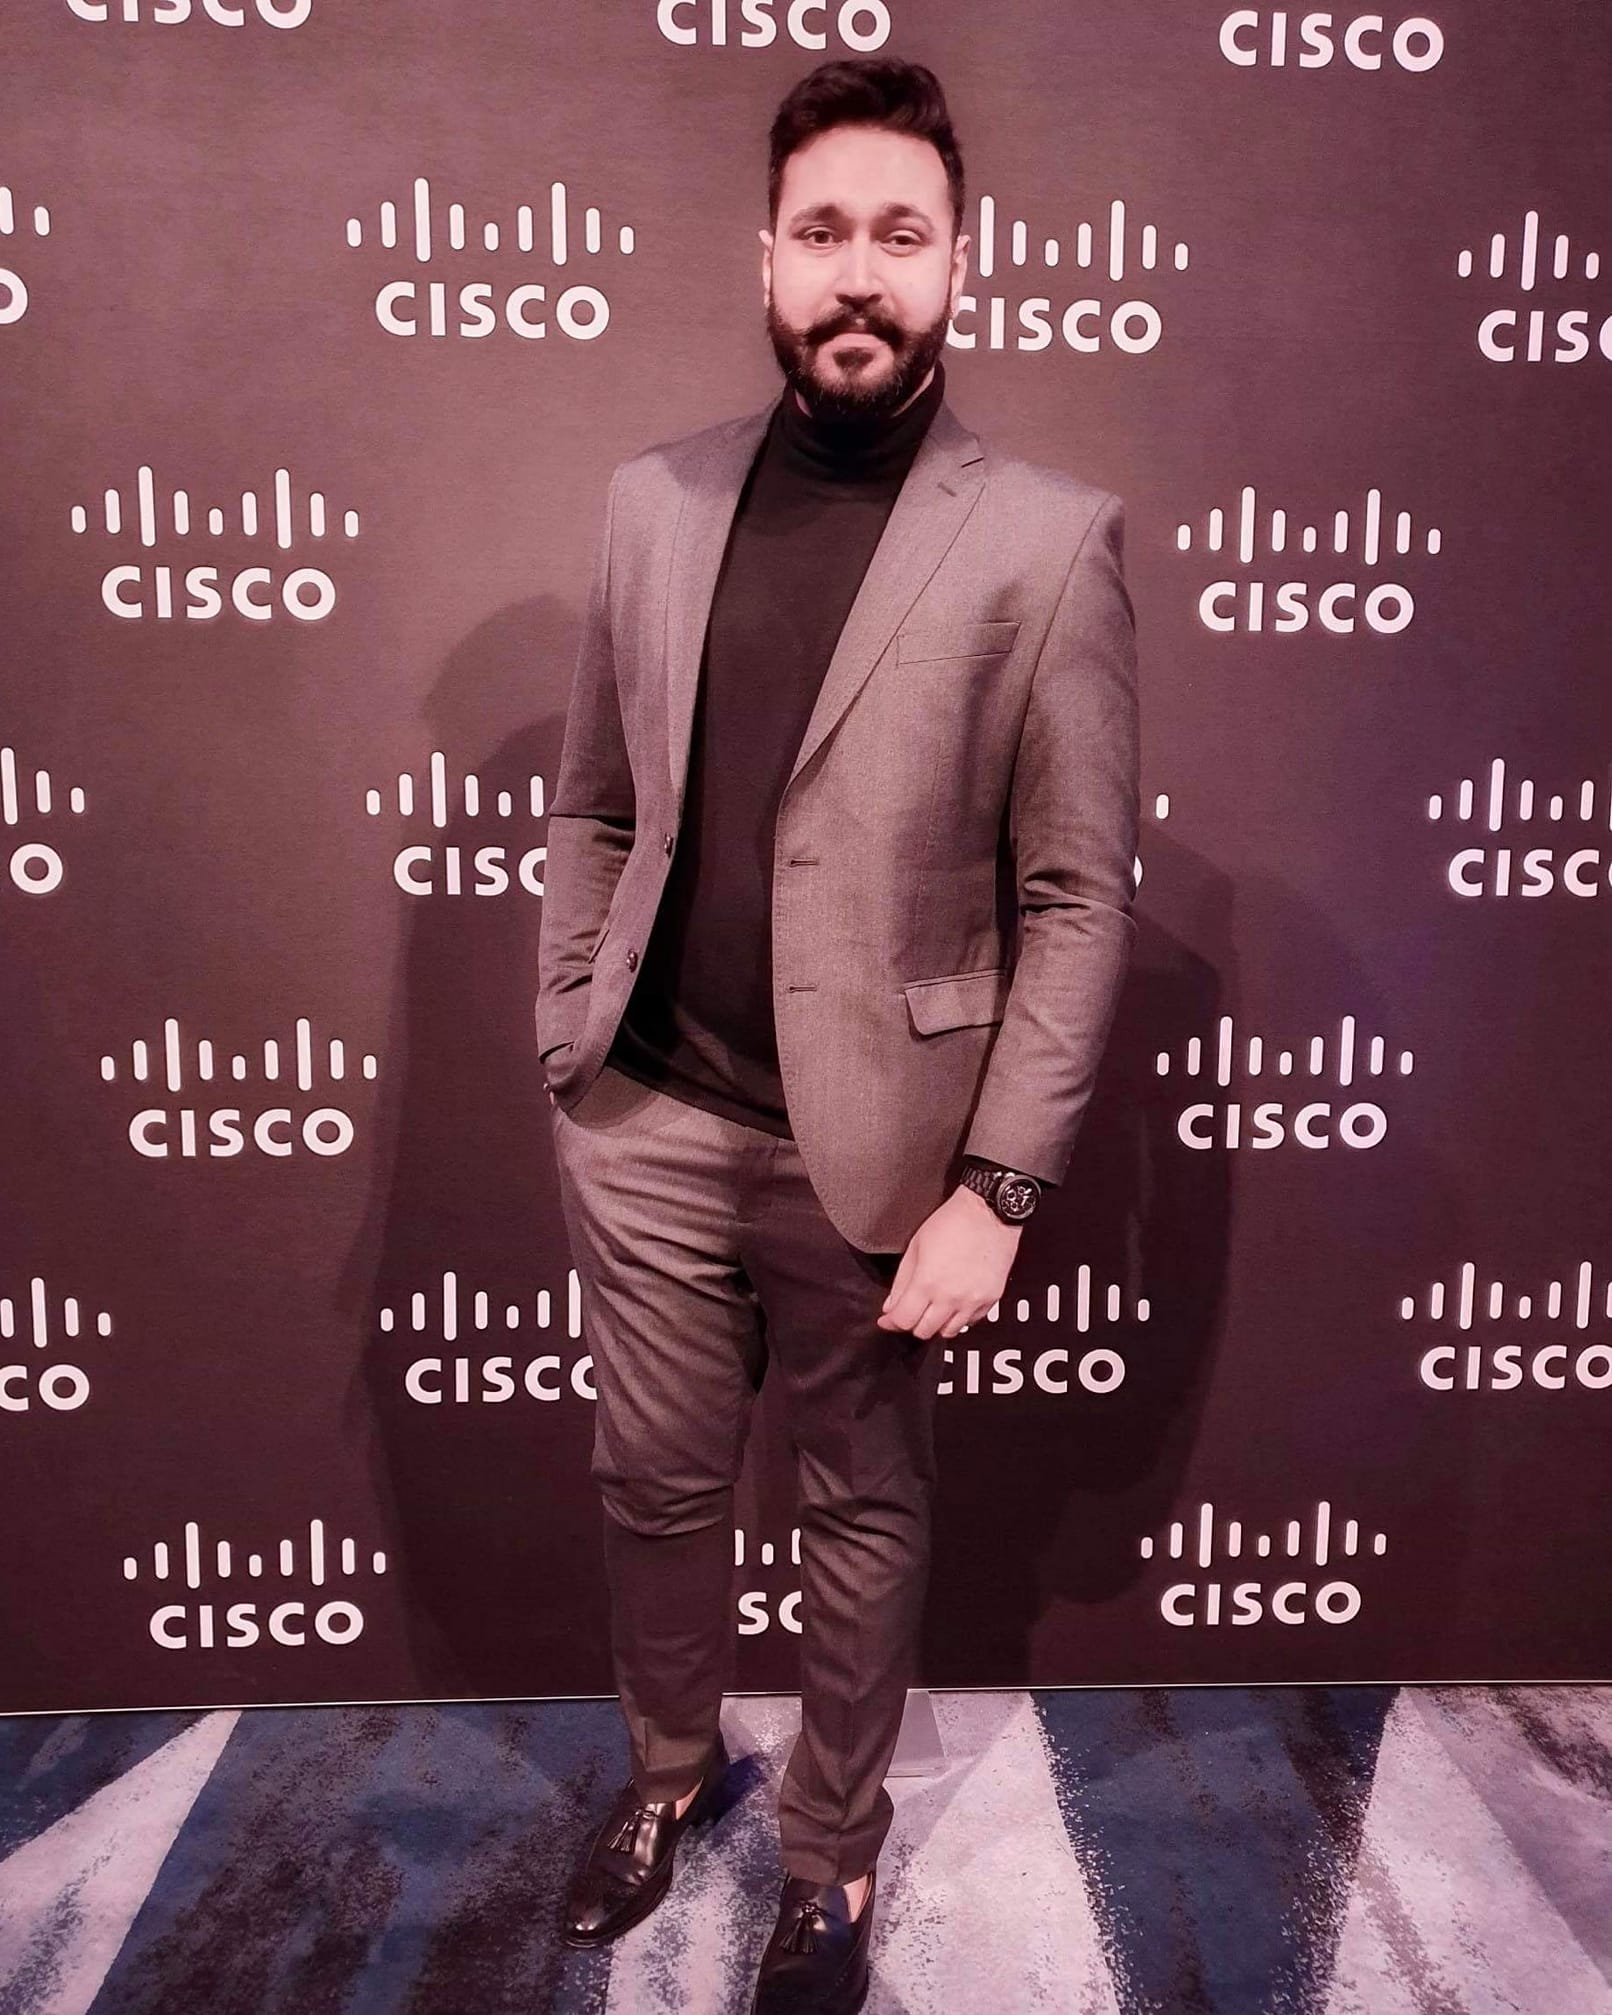 Joy stands in a suit in front of a wall of Cisco logos.